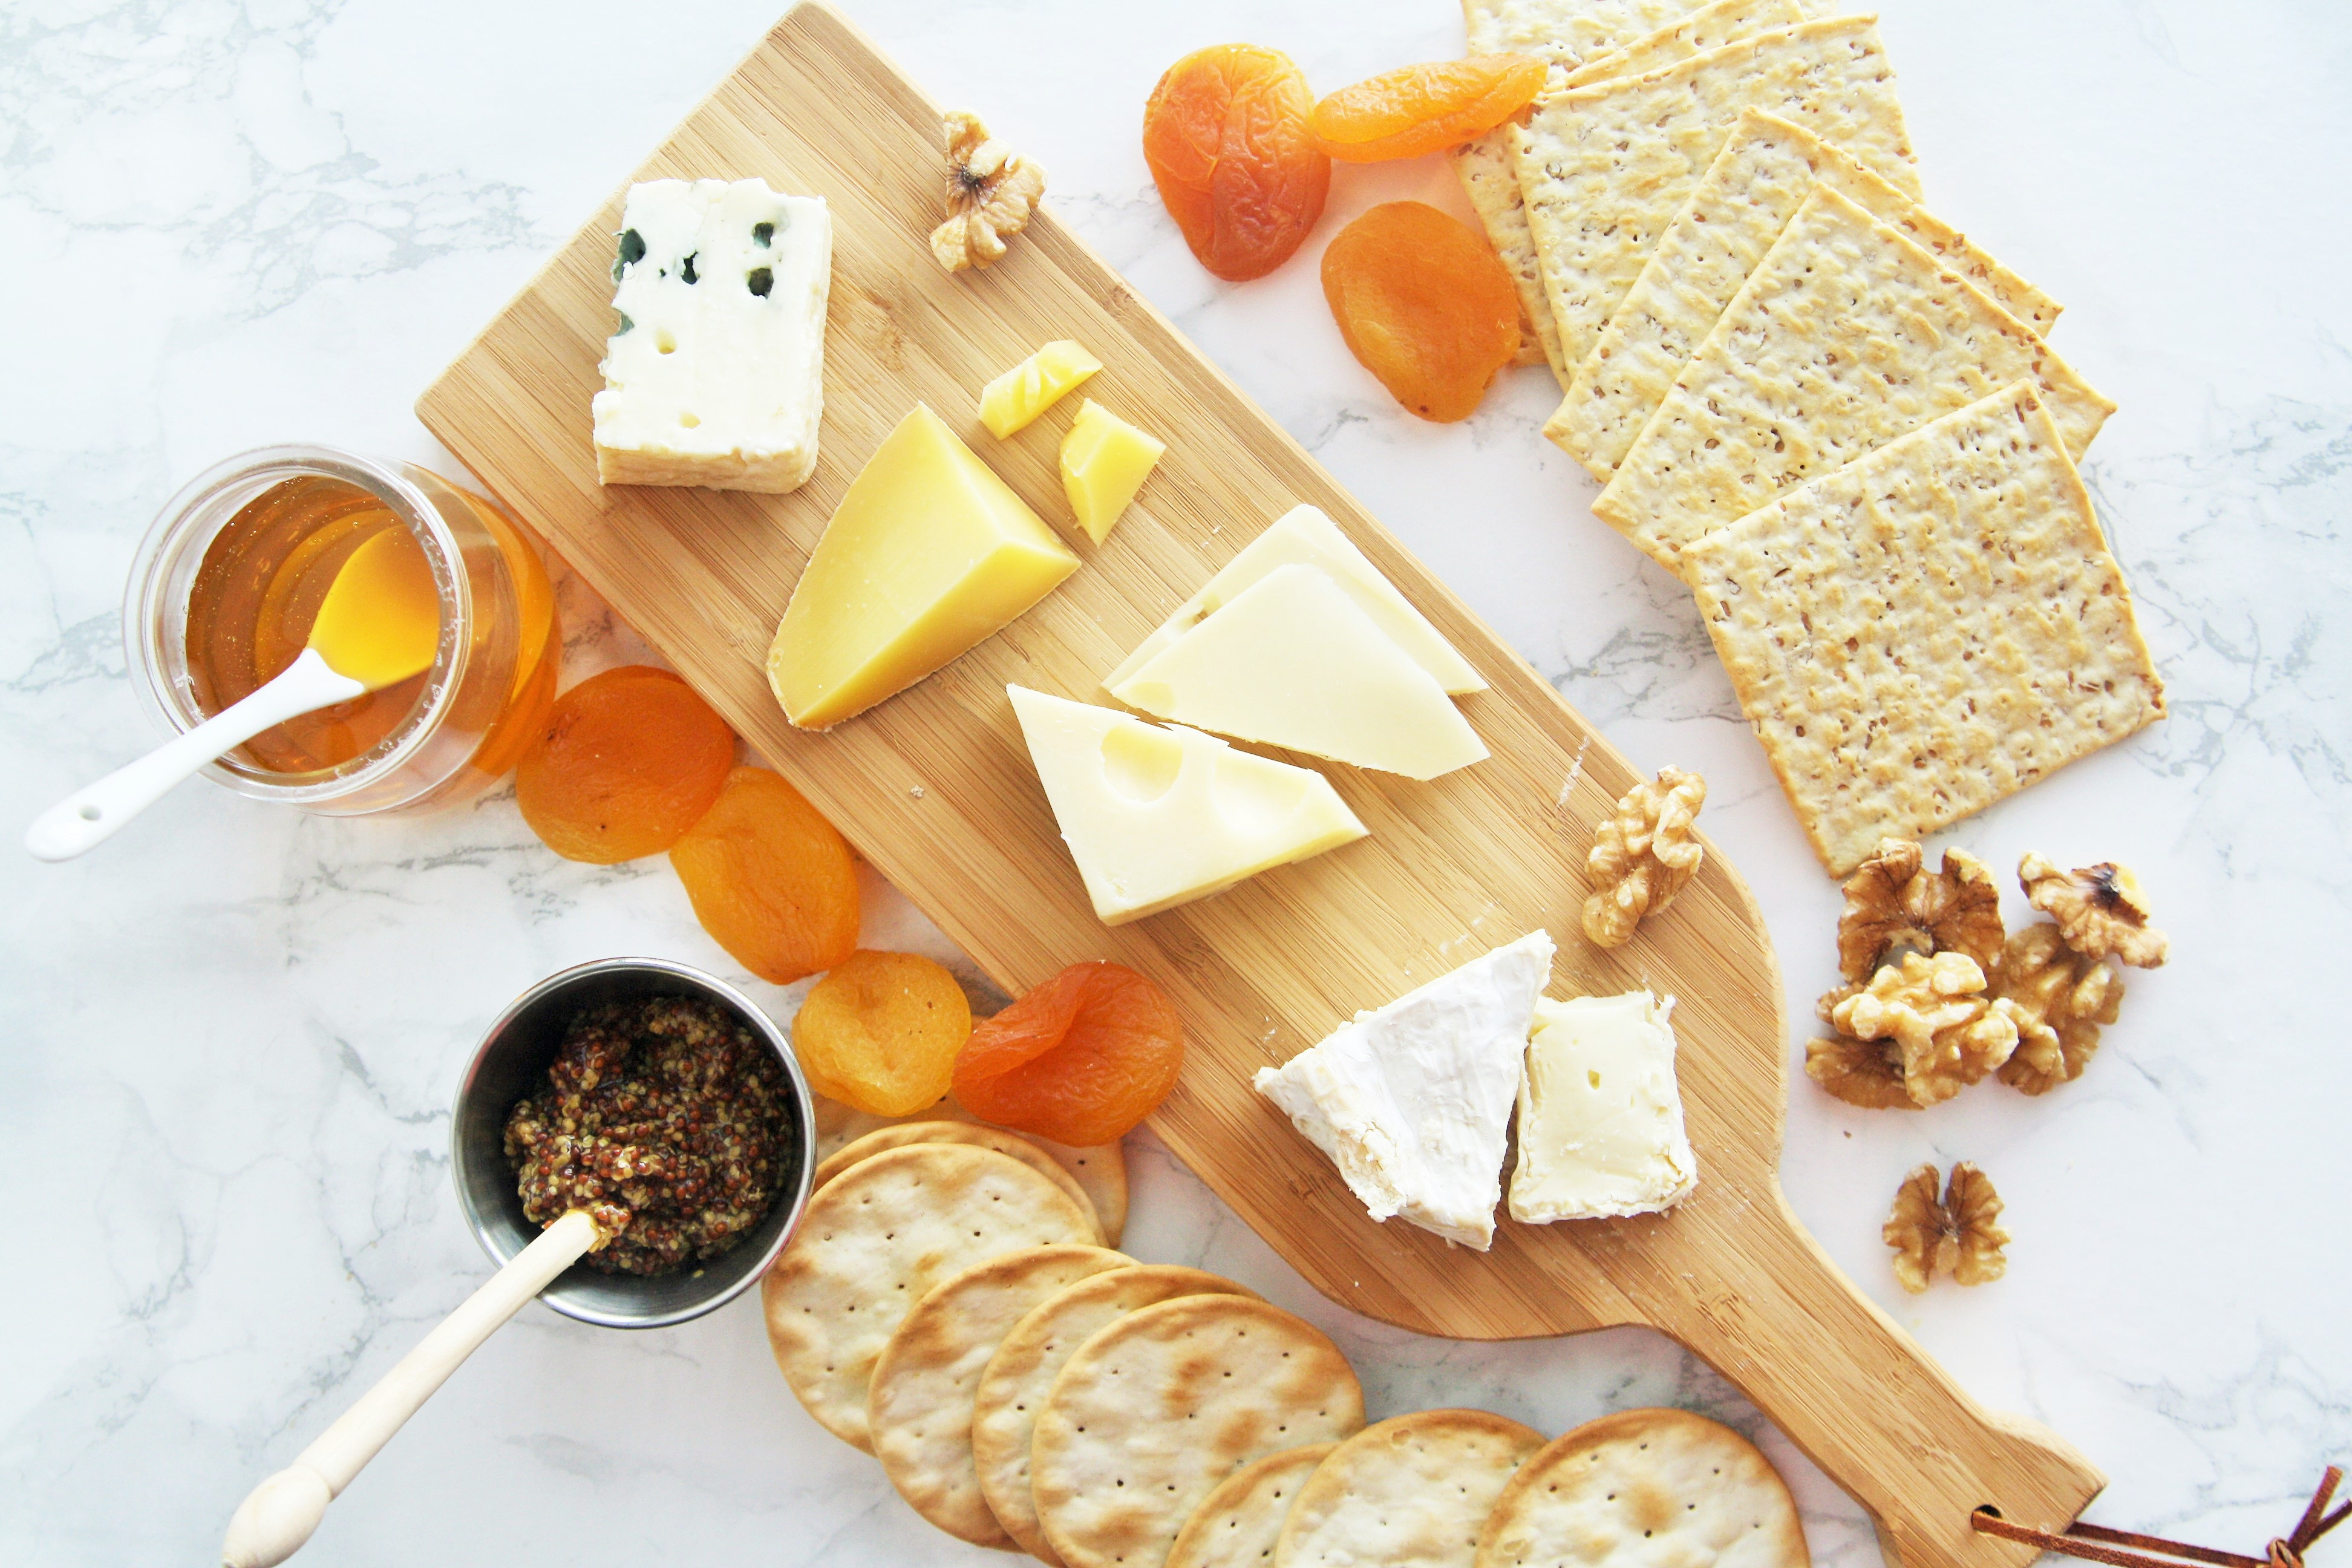 how-to-build-perfect-cheese-plate-3 & How to Build the Perfect Cheese Plate - The Tasty Bite